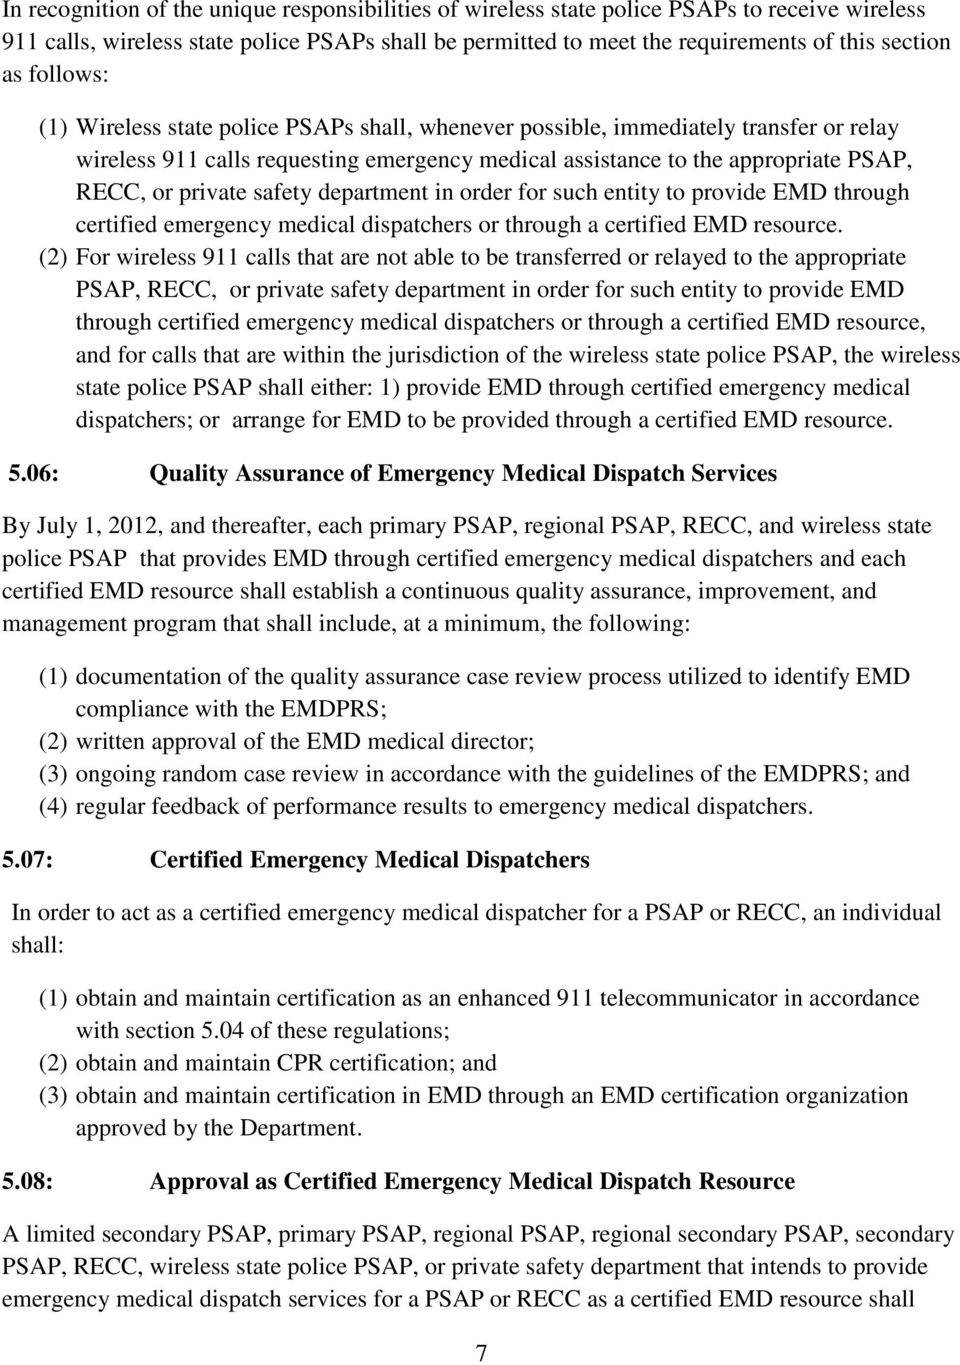 safety department in order for such entity to provide EMD through certified emergency medical dispatchers or through a certified EMD resource.